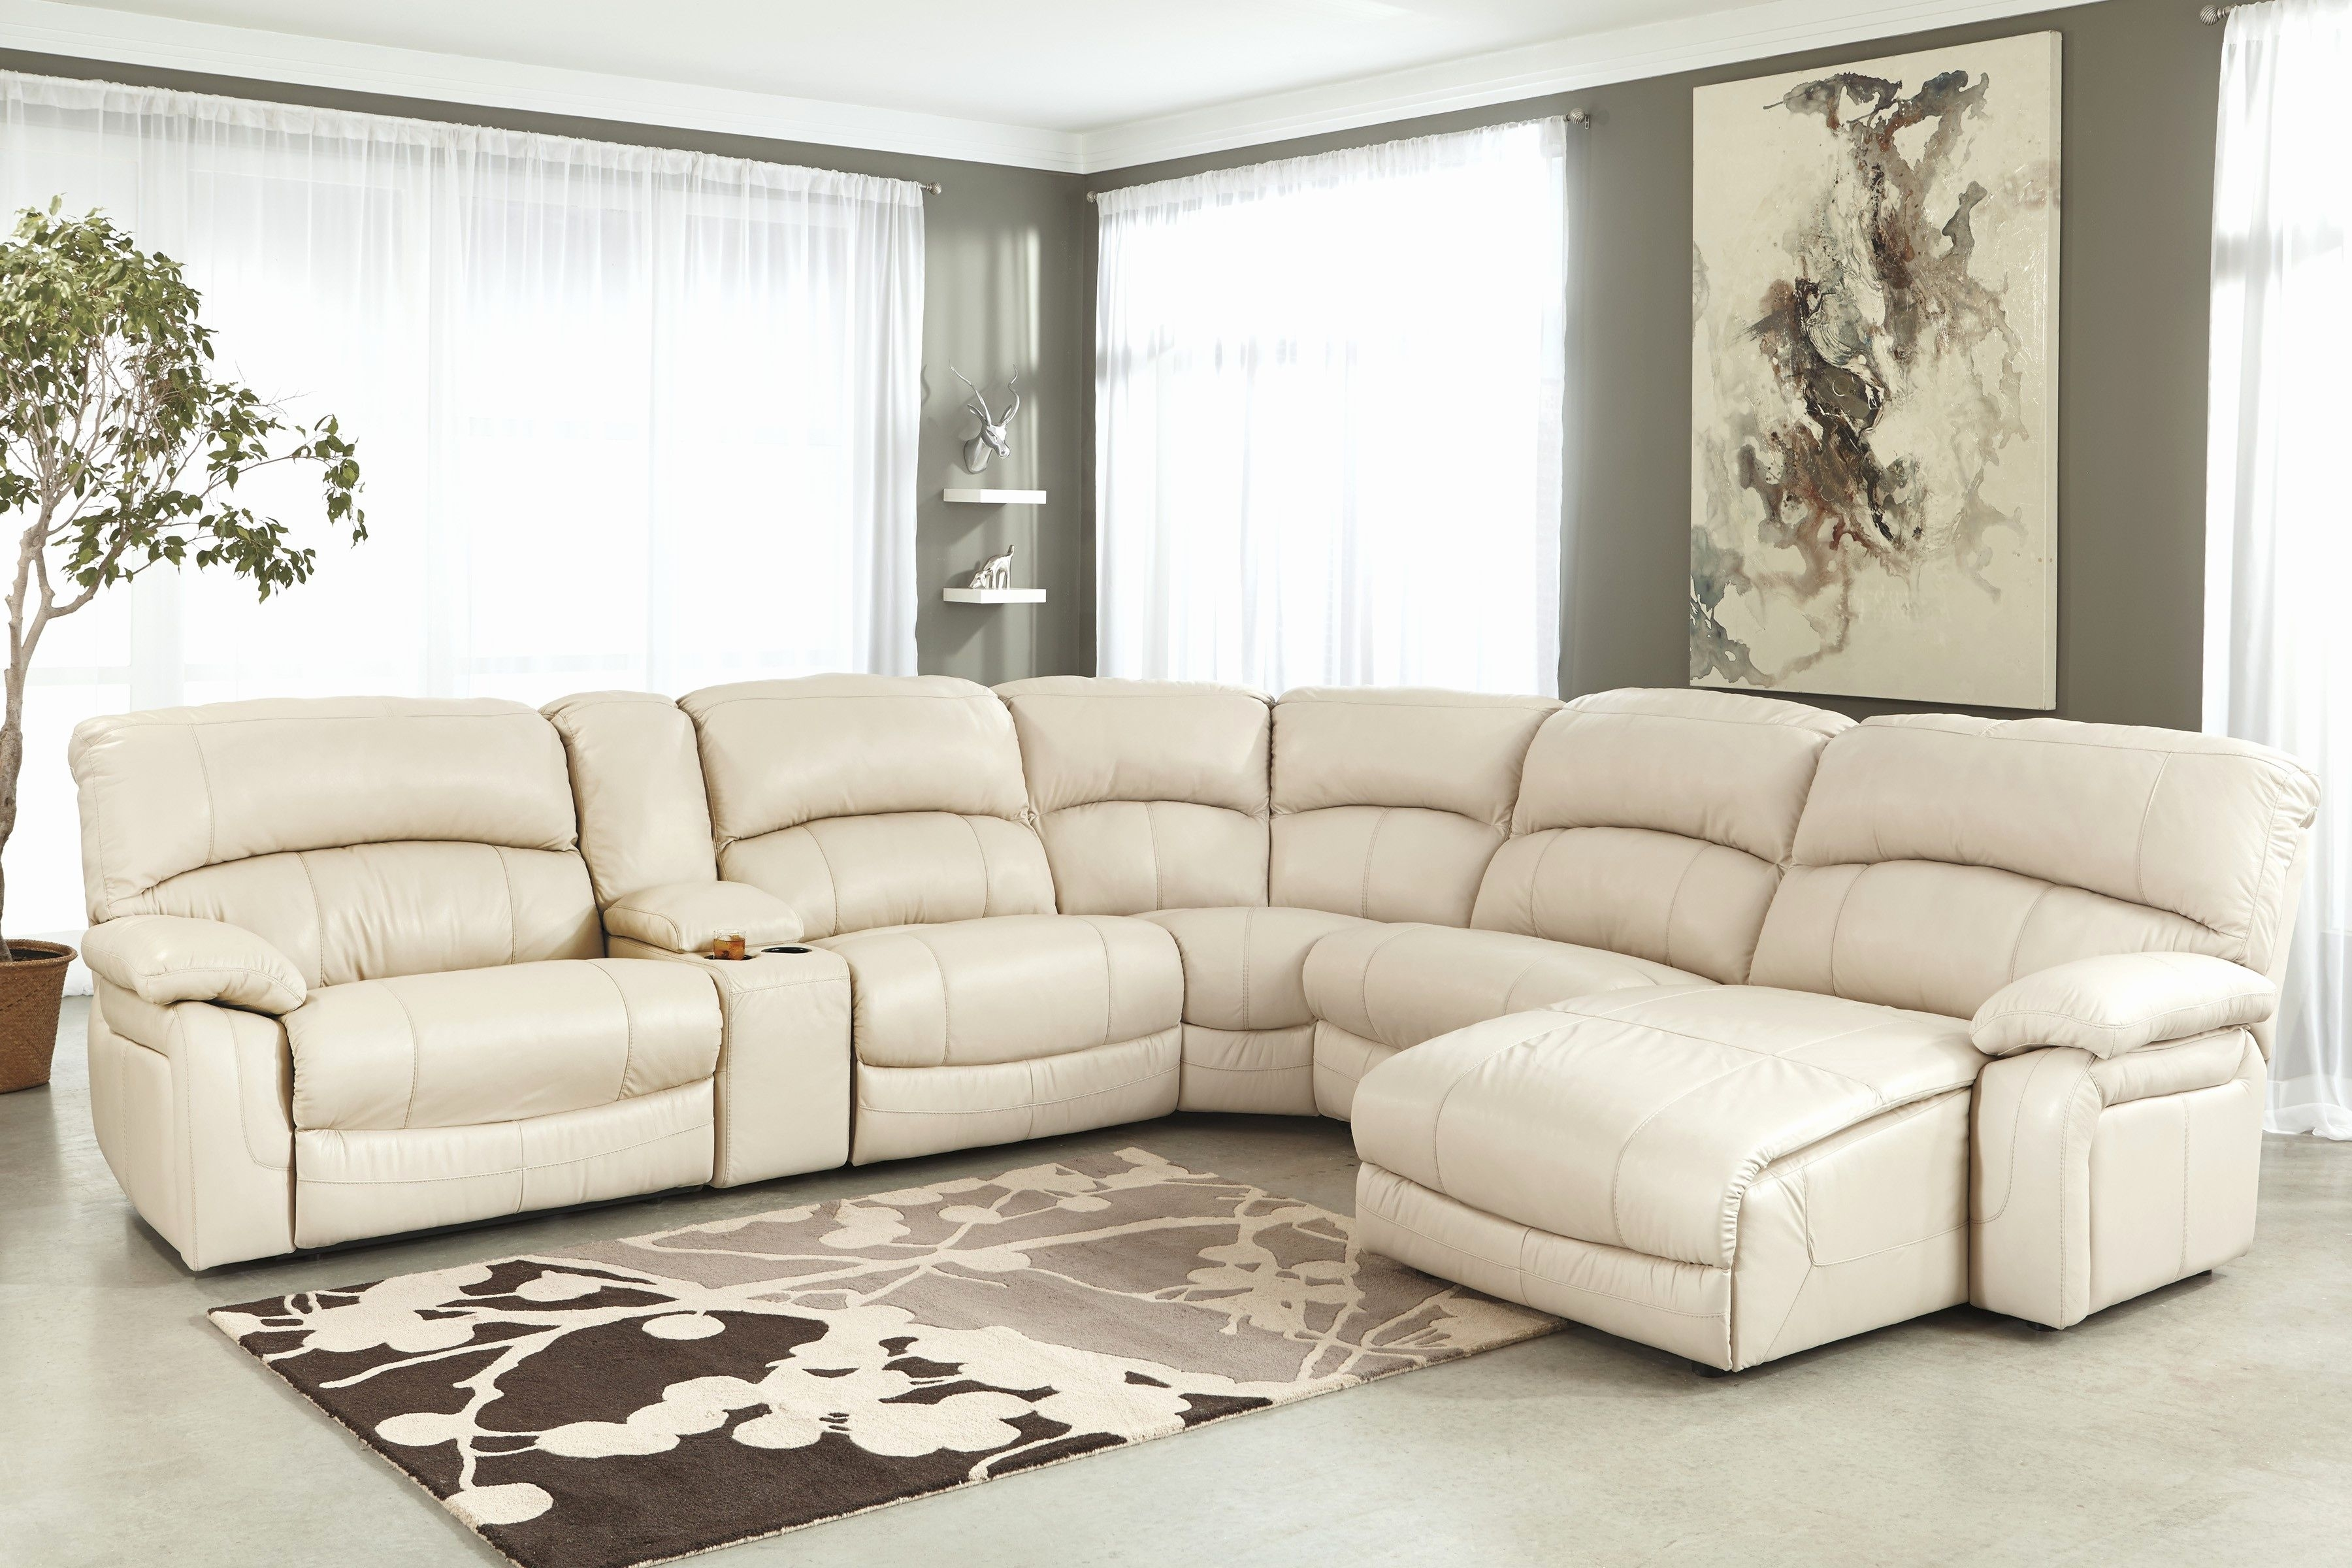 New Cream Sectional Sofa Pics Cream Leather Sectional Sofa With with regard to Marcus Grey 6 Piece Sectionals With  Power Headrest & Usb (Image 22 of 30)